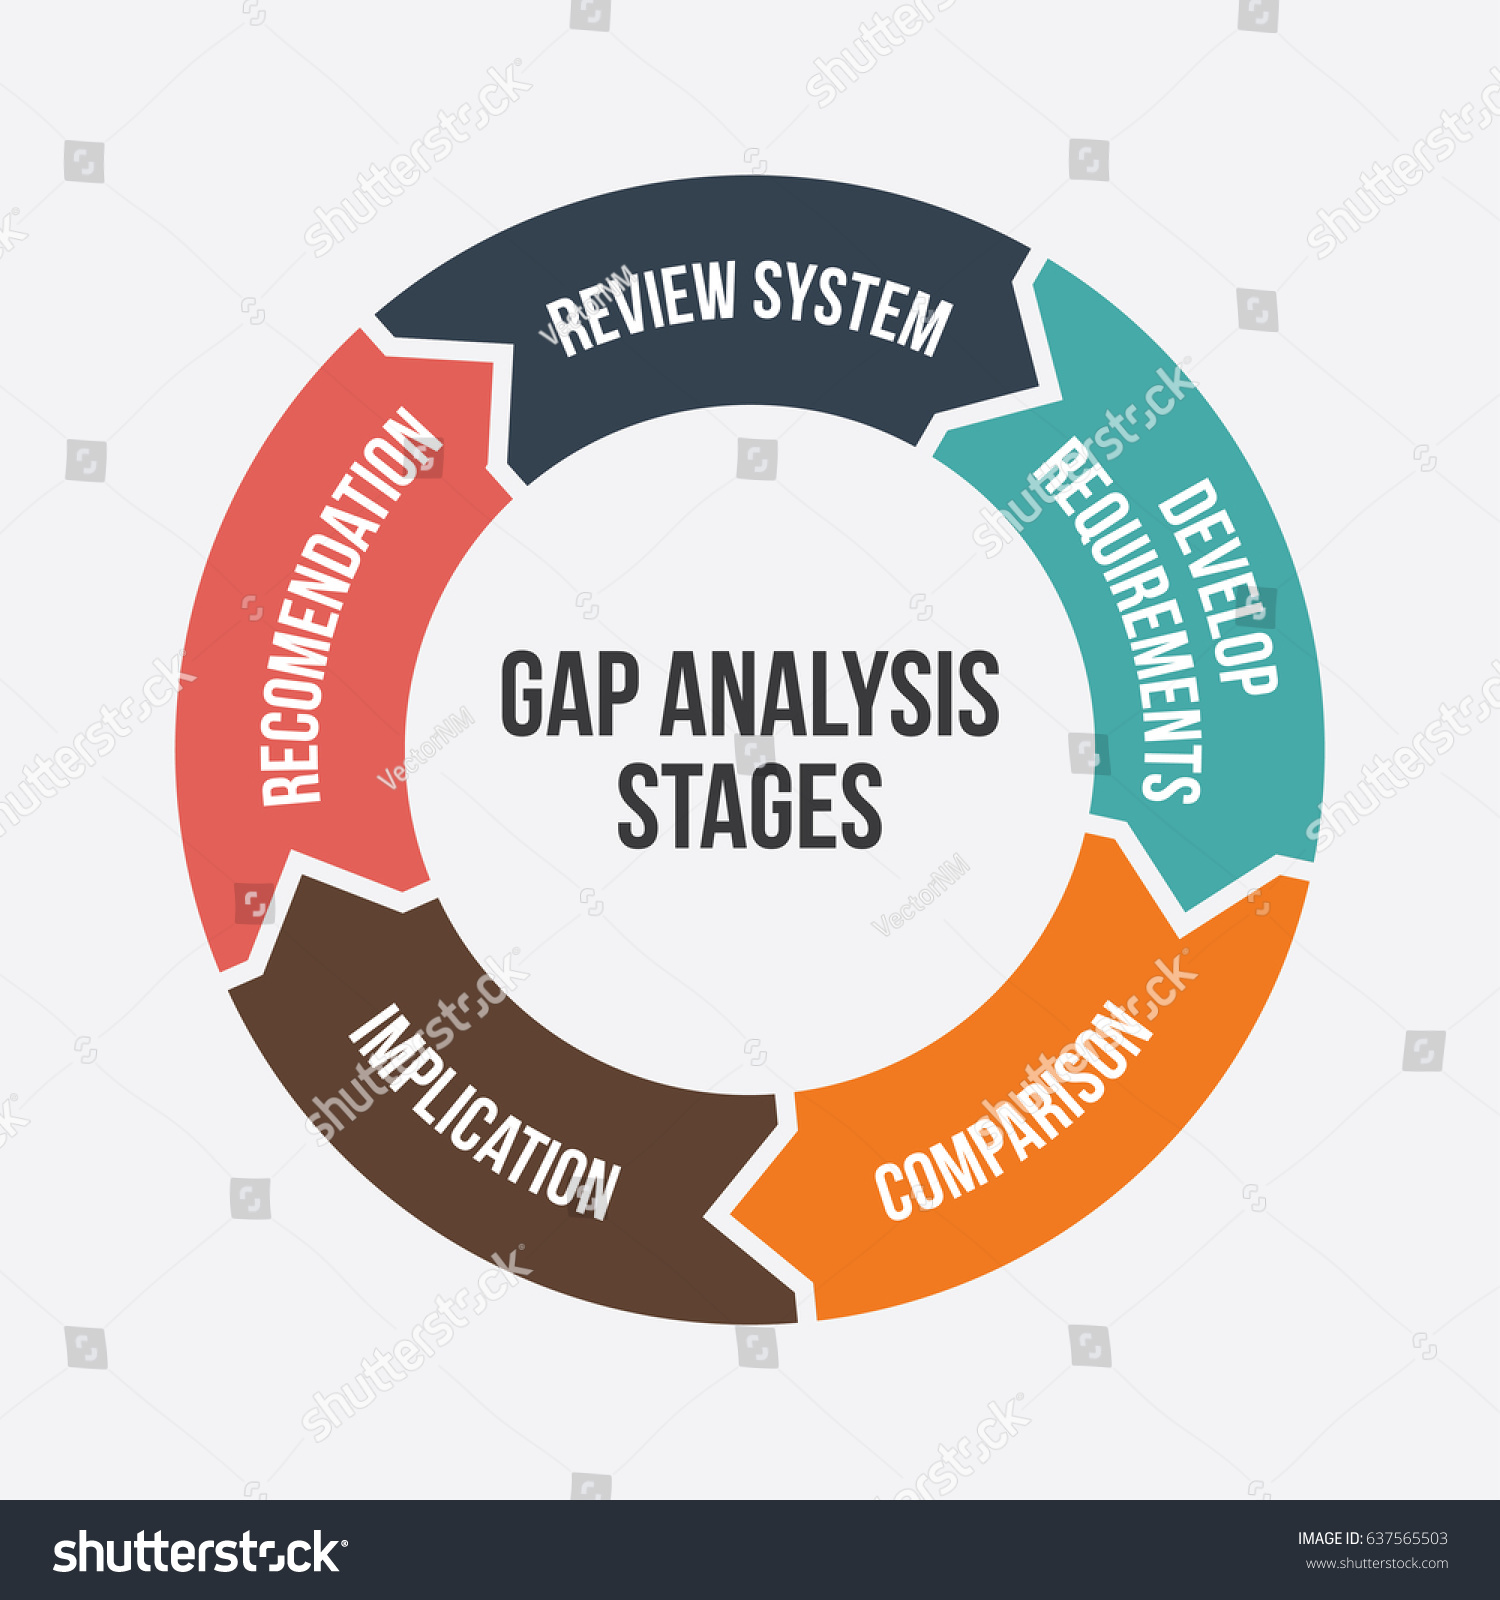 Gap Analysis Stages Diagram, Illustration, Business Strategy